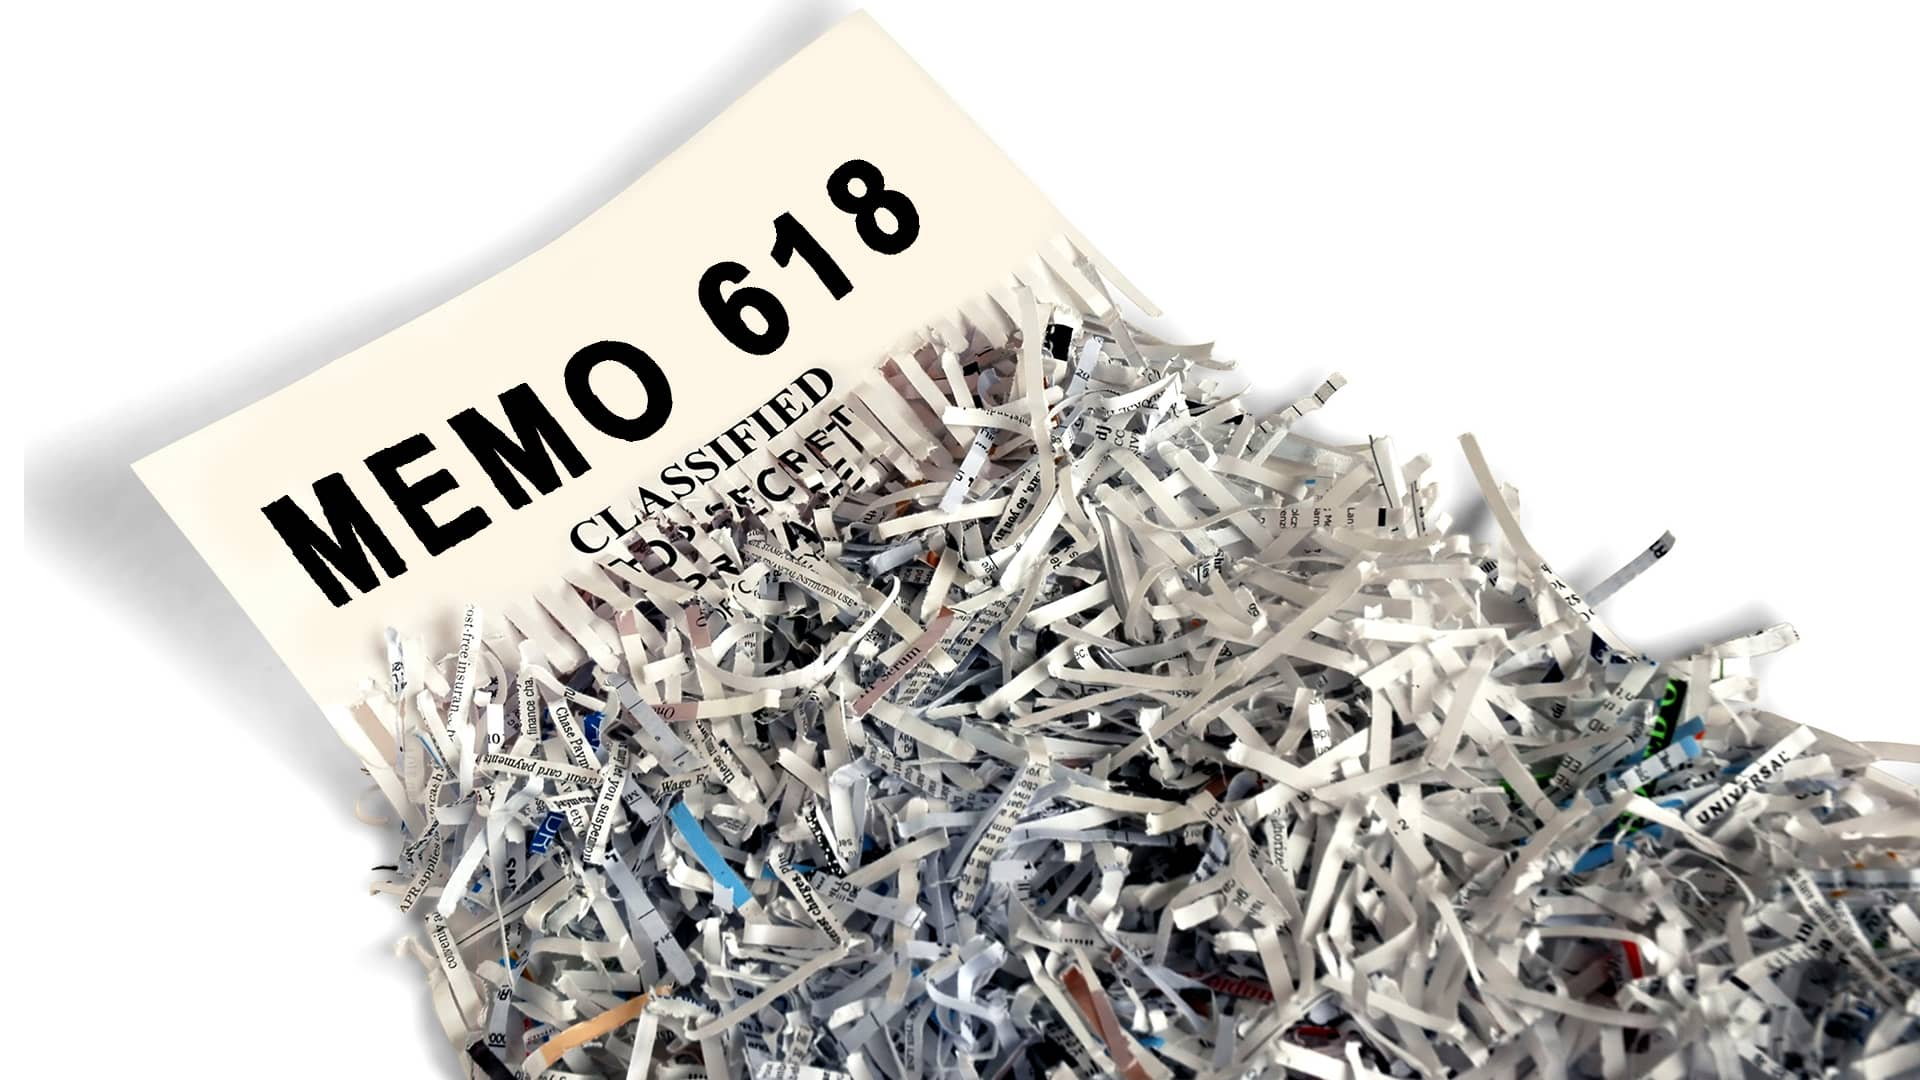 What is Memo 618? The secret of Memo 618 revealed